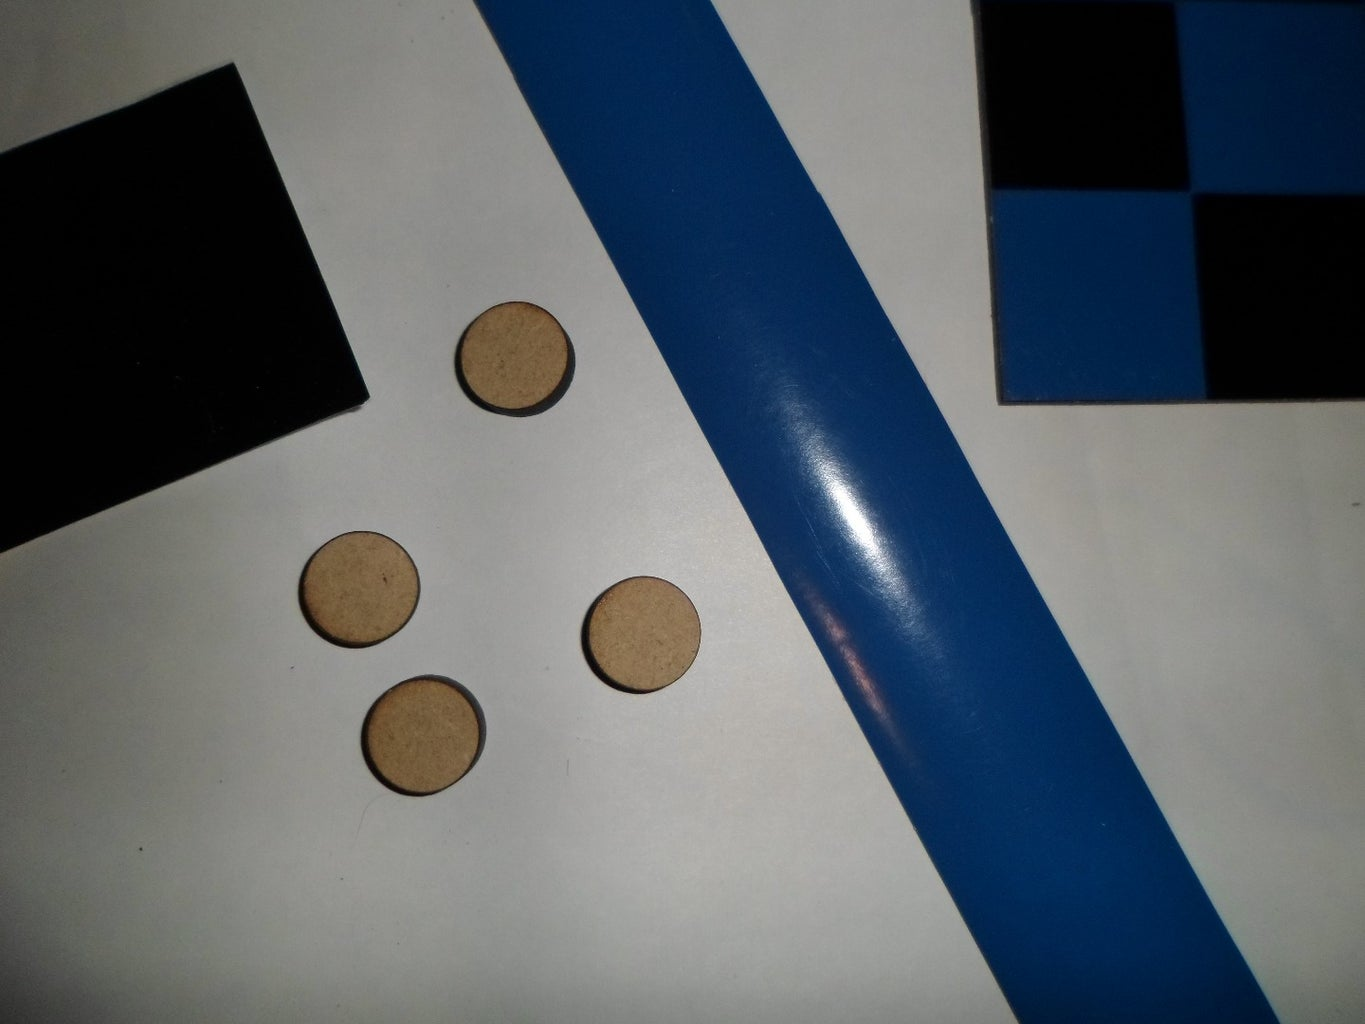 Step 6: Cut and Stick the Vinyl Paper Into the Pieces